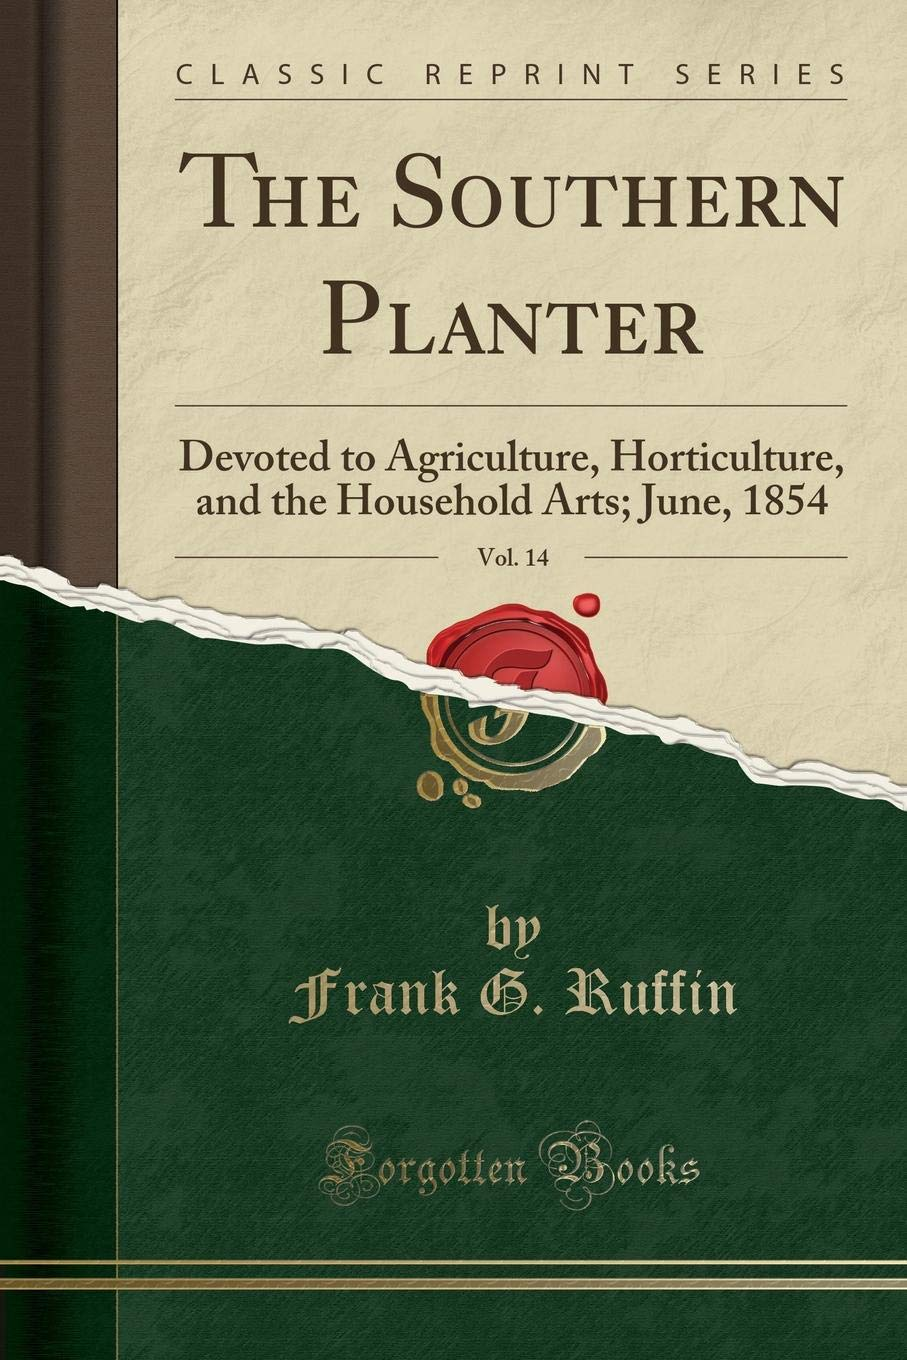 The Southern Planter, Vol. 14: Devoted to Agriculture, Horticulture, and the Household Arts; June, 1854 (Classic Reprint) pdf